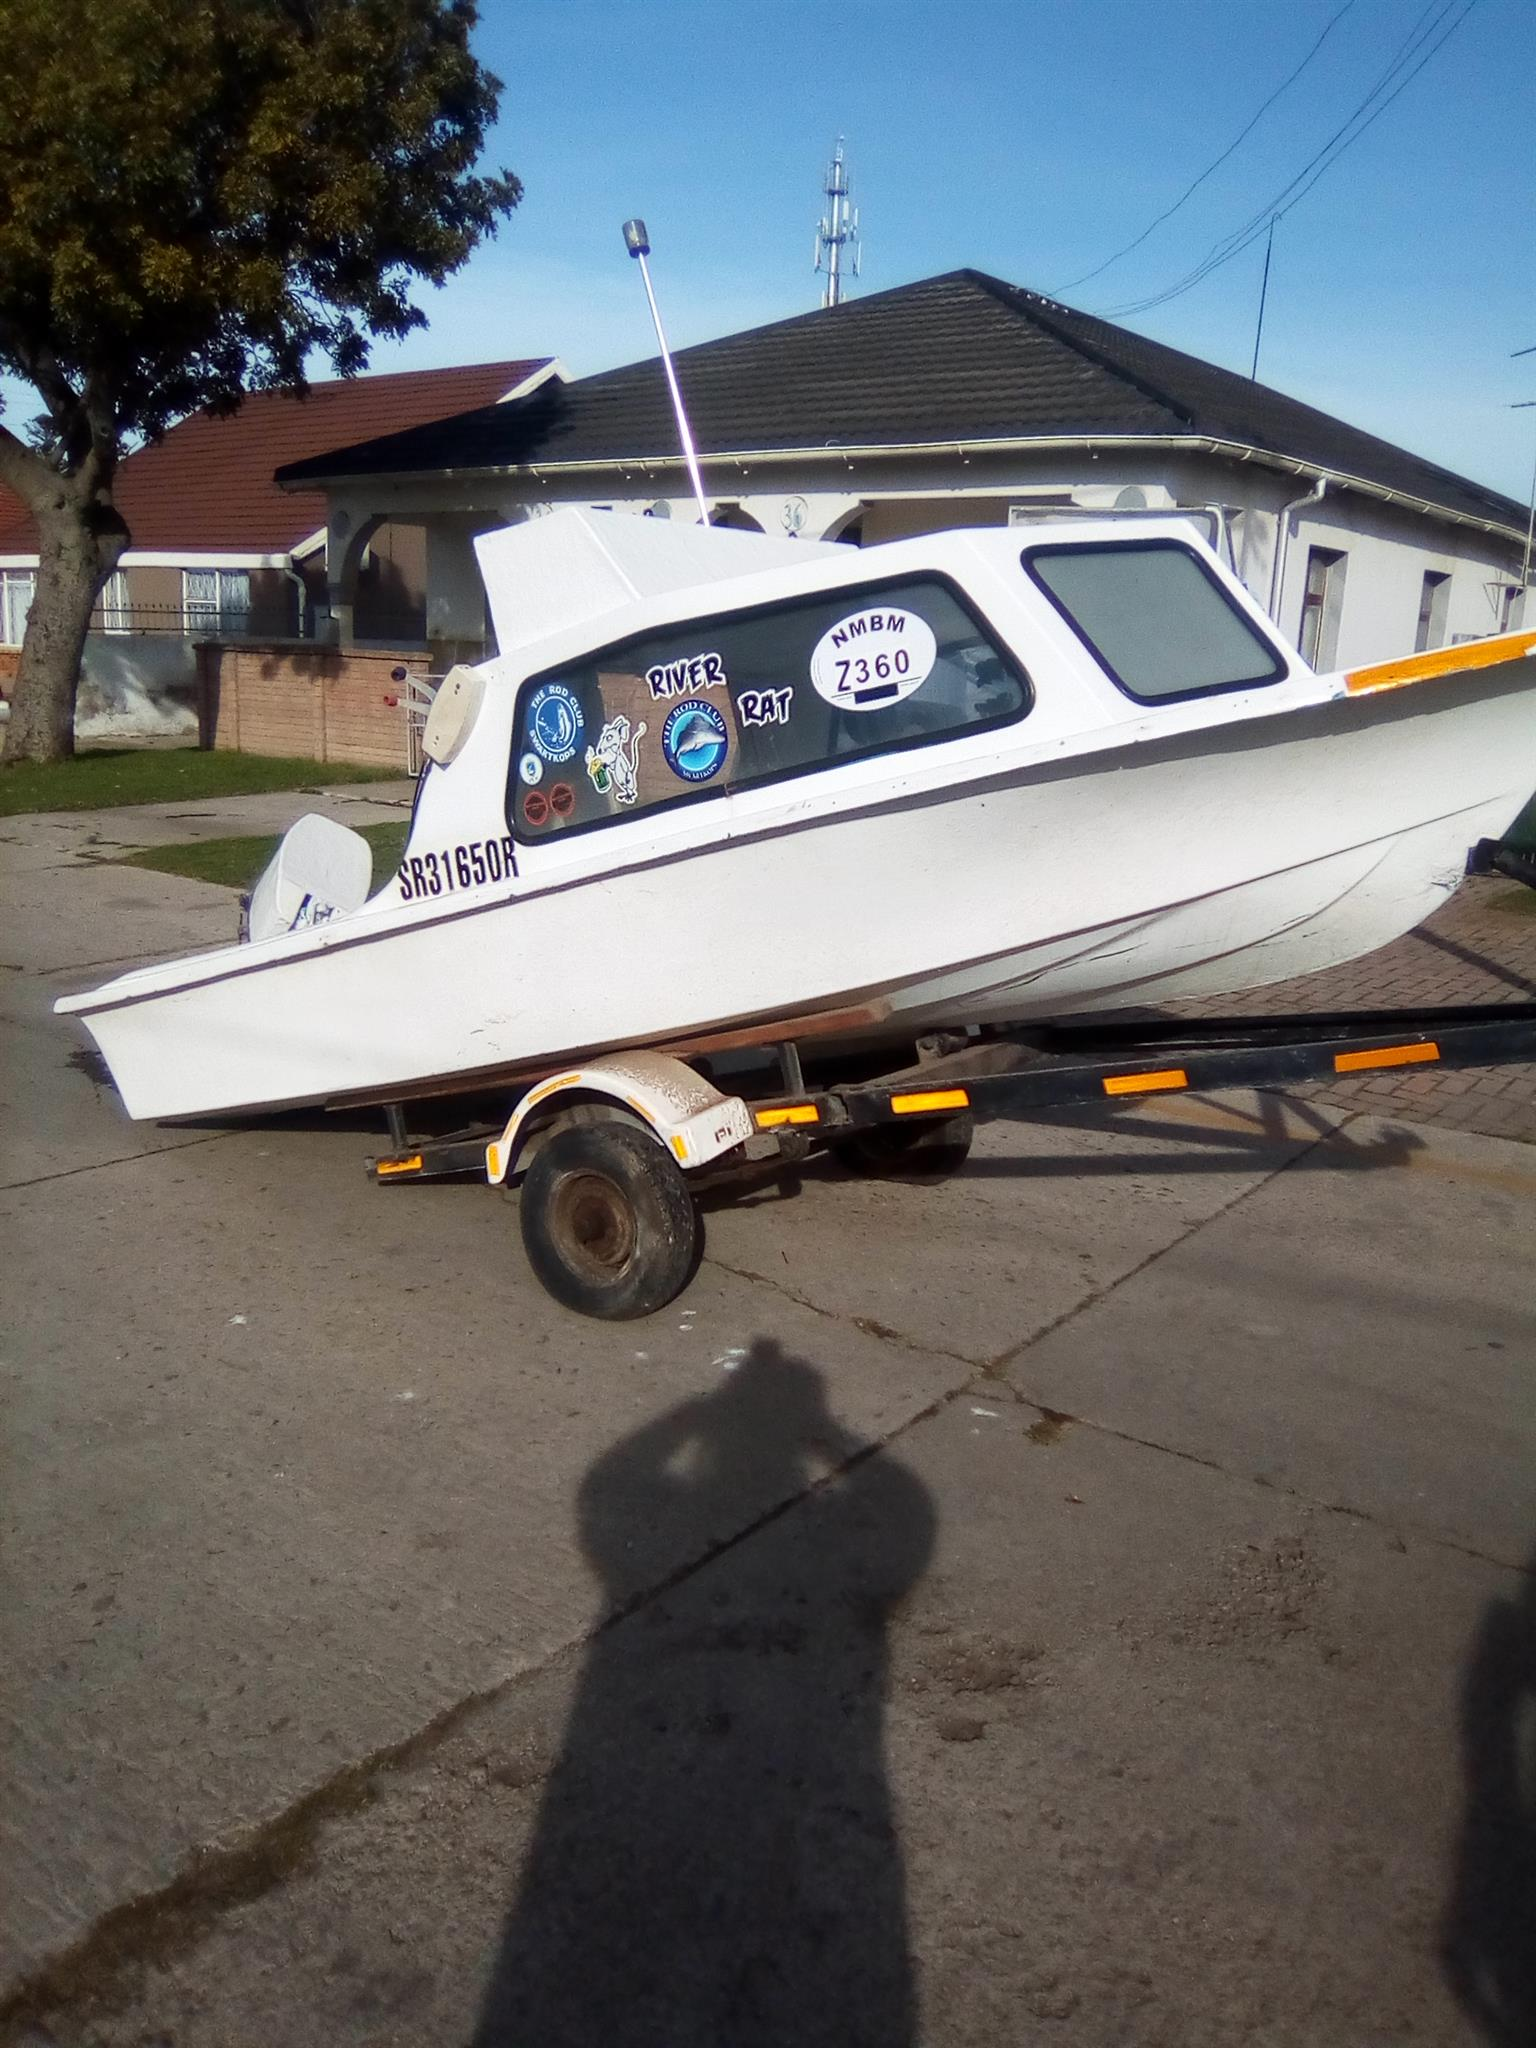 Cabin Boat trailer& Engine